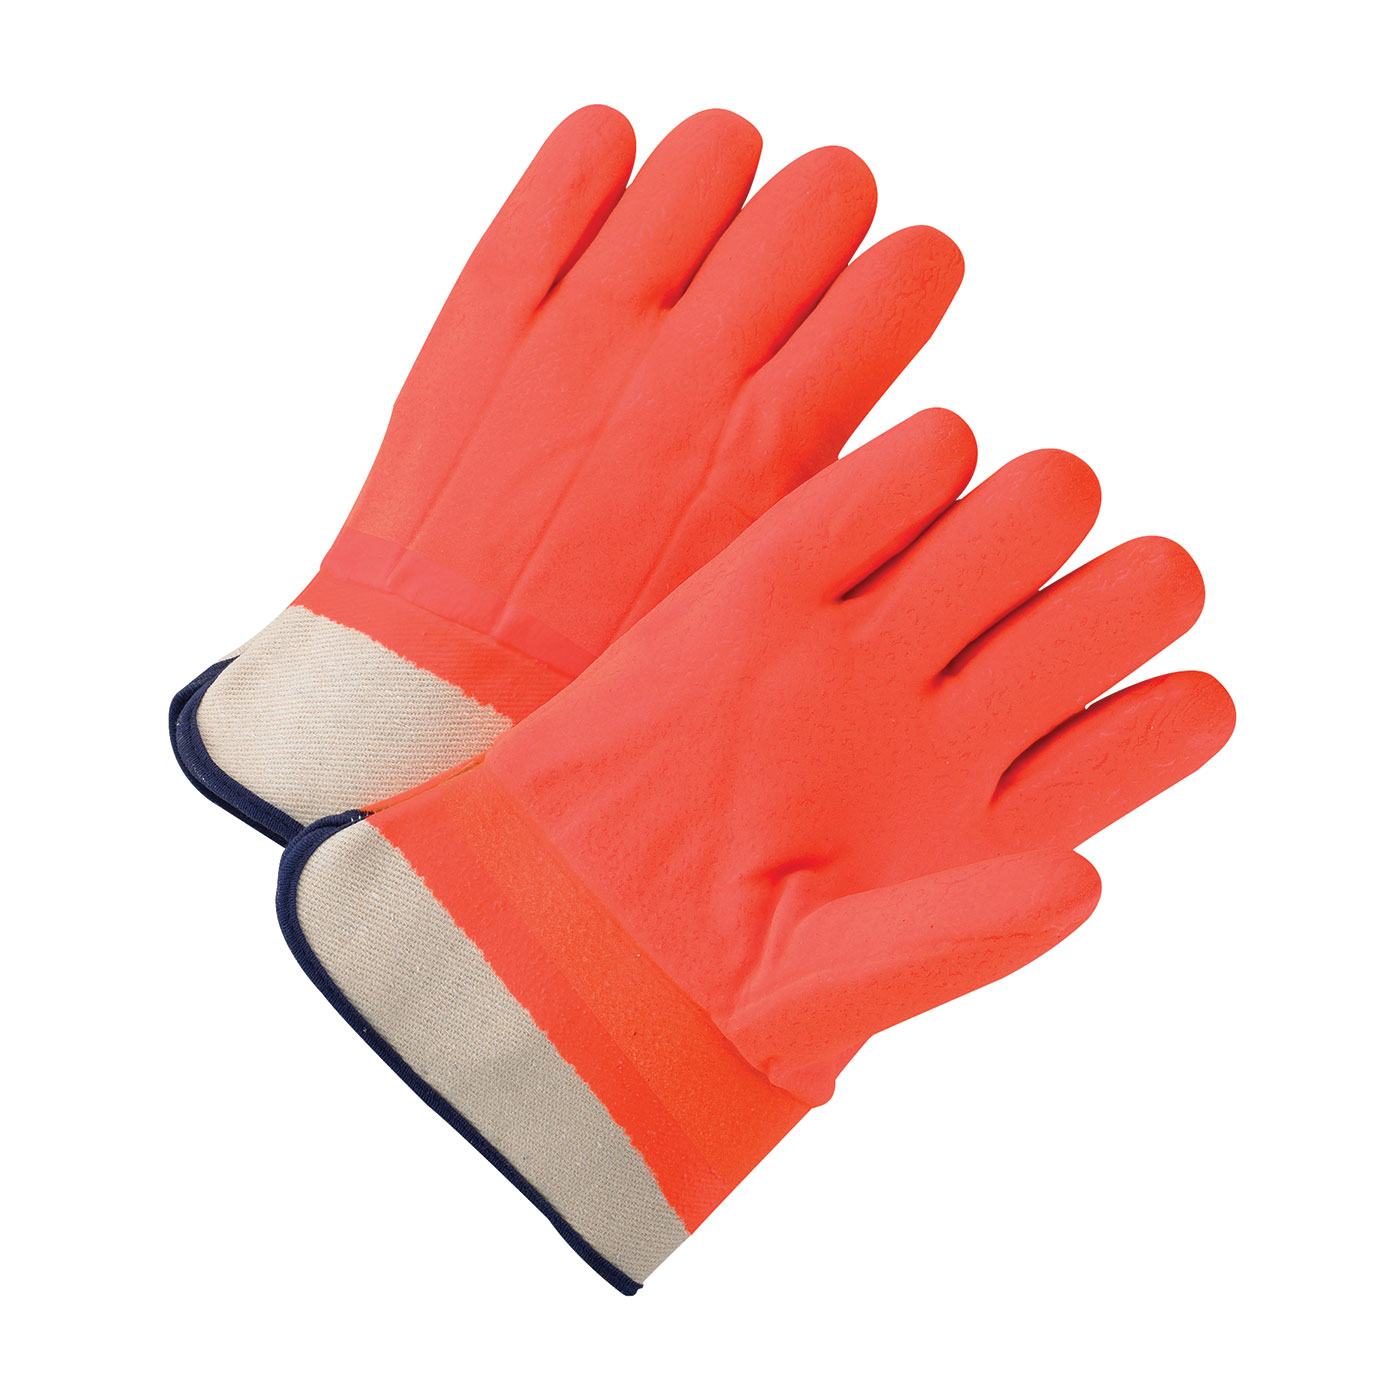 PVC Dipped Glove with Foam over Jersey Lining - Rough Finish, Hi-Vis Orange, L